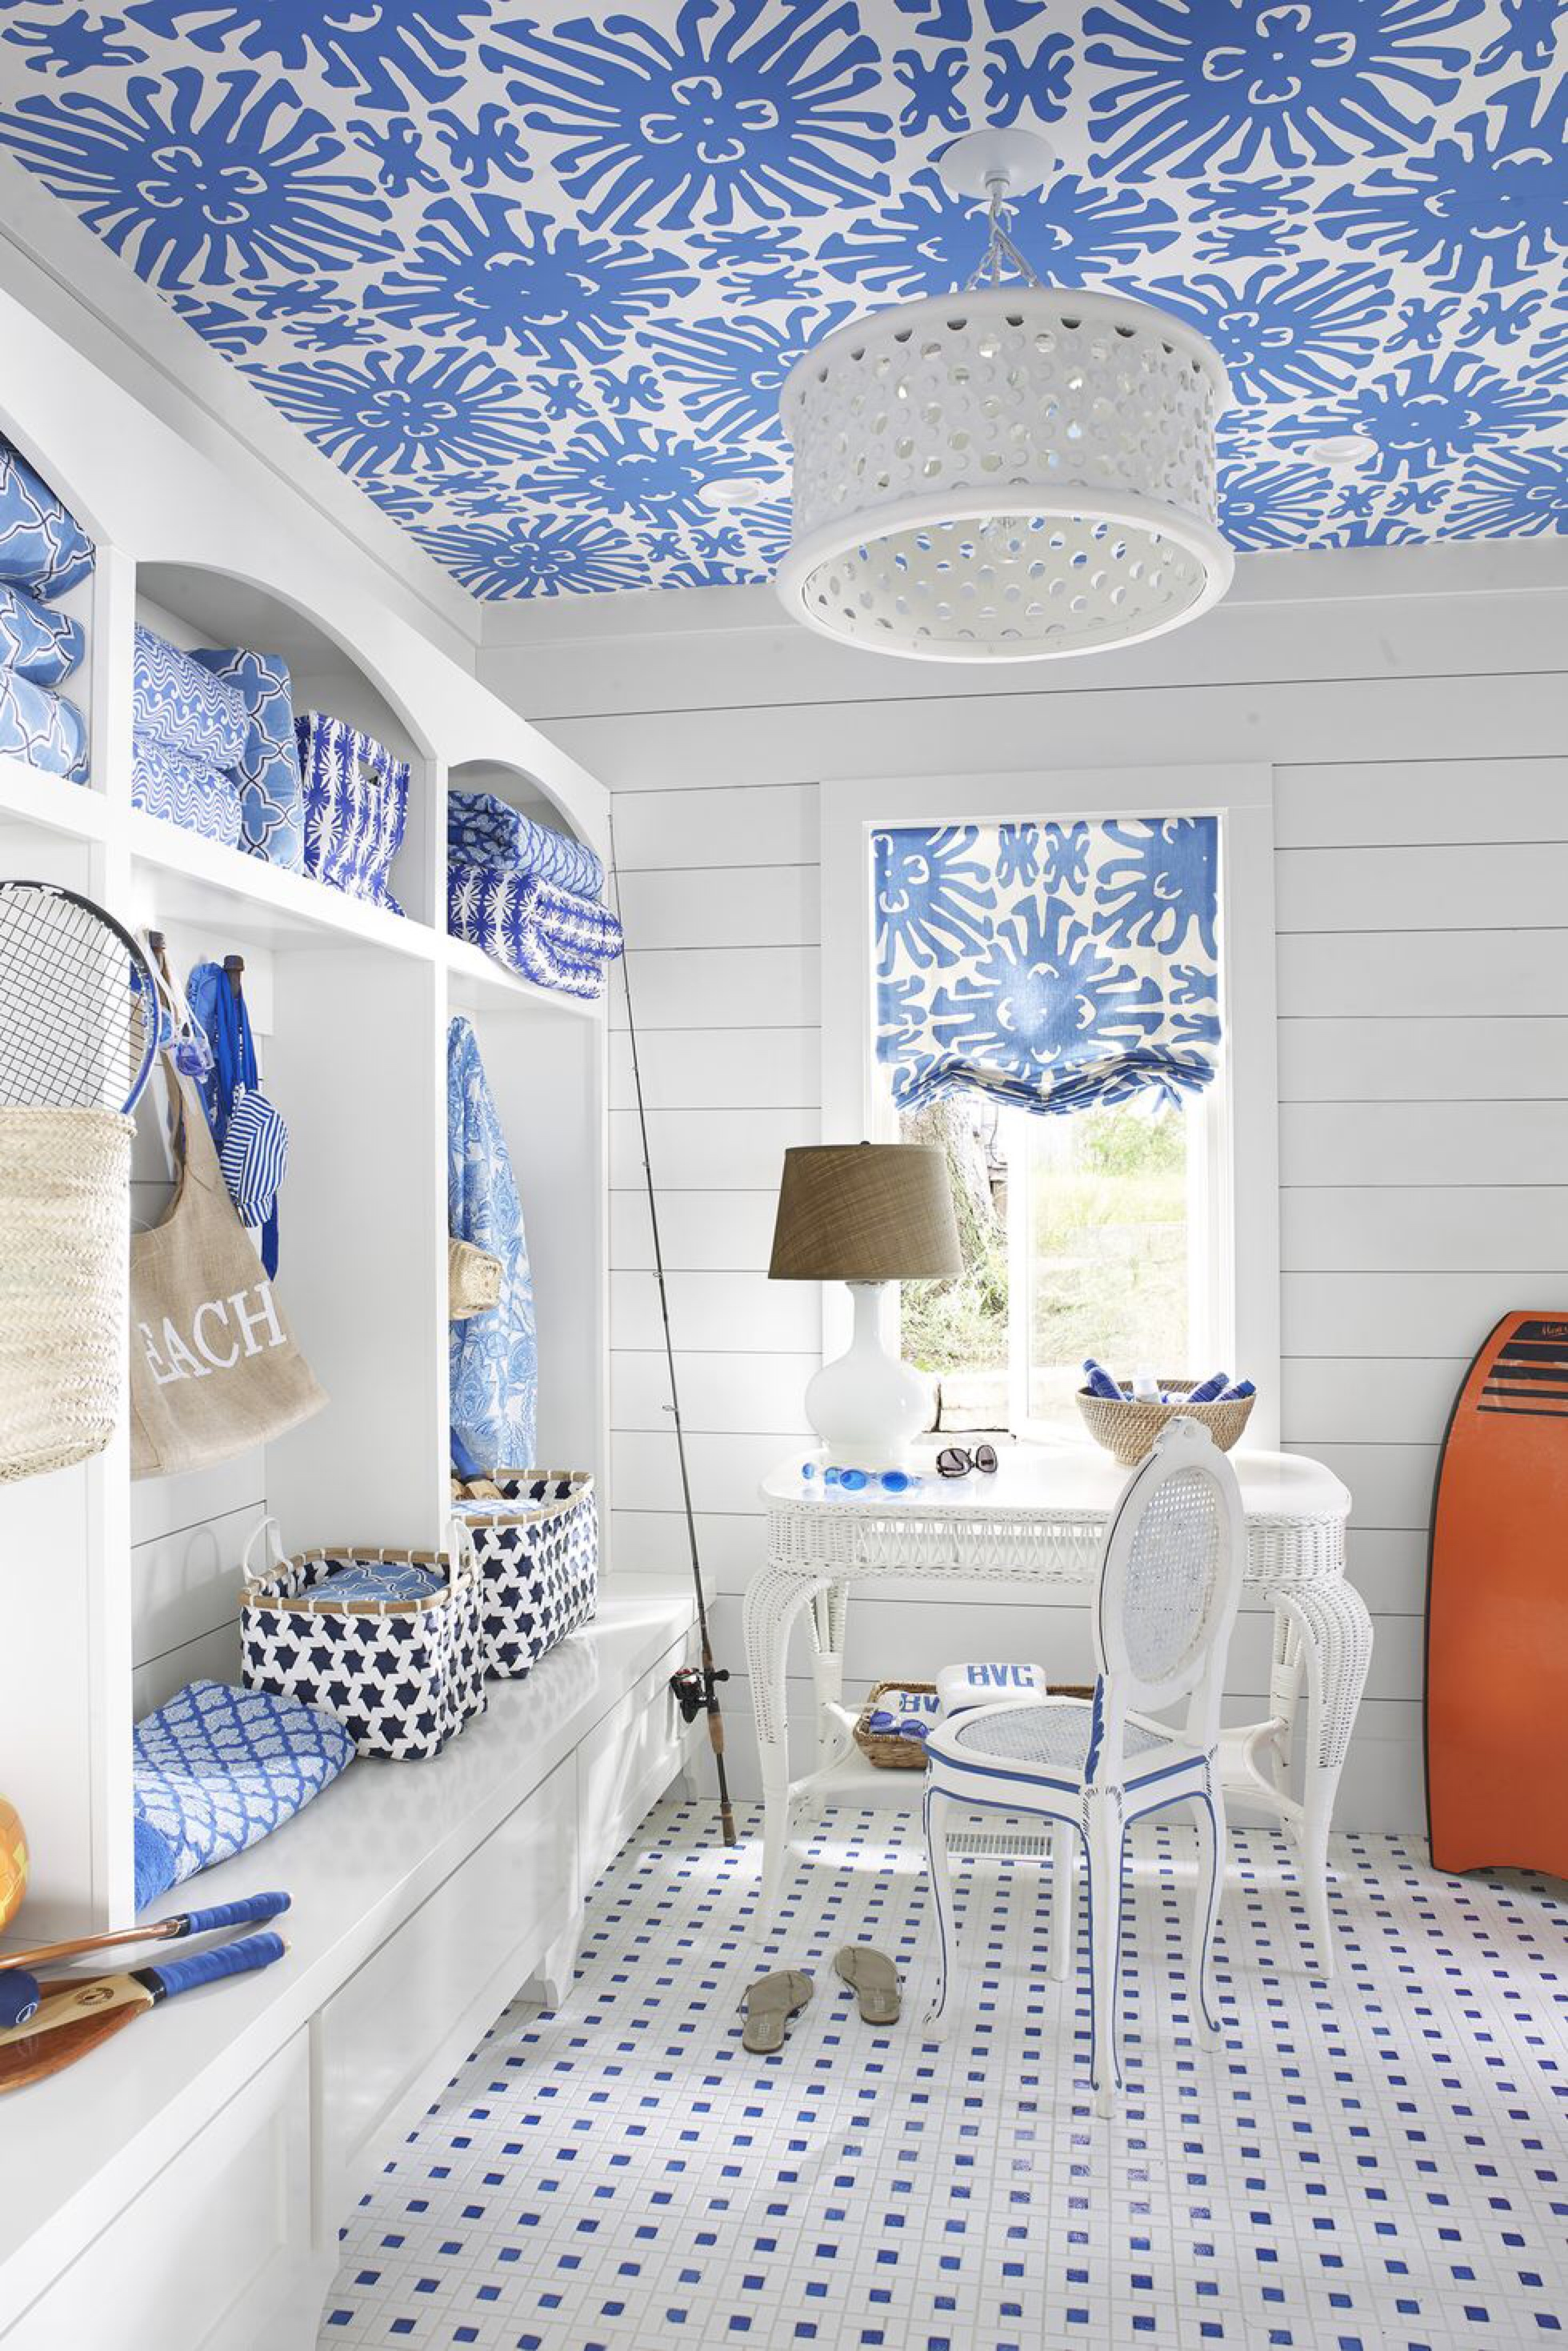 Article_from_House_Beautiful_summer_home_in_Ludington_Michigan_decor_decoration_blue_white_beach_decor_interiors_and_more_vacations.jpg